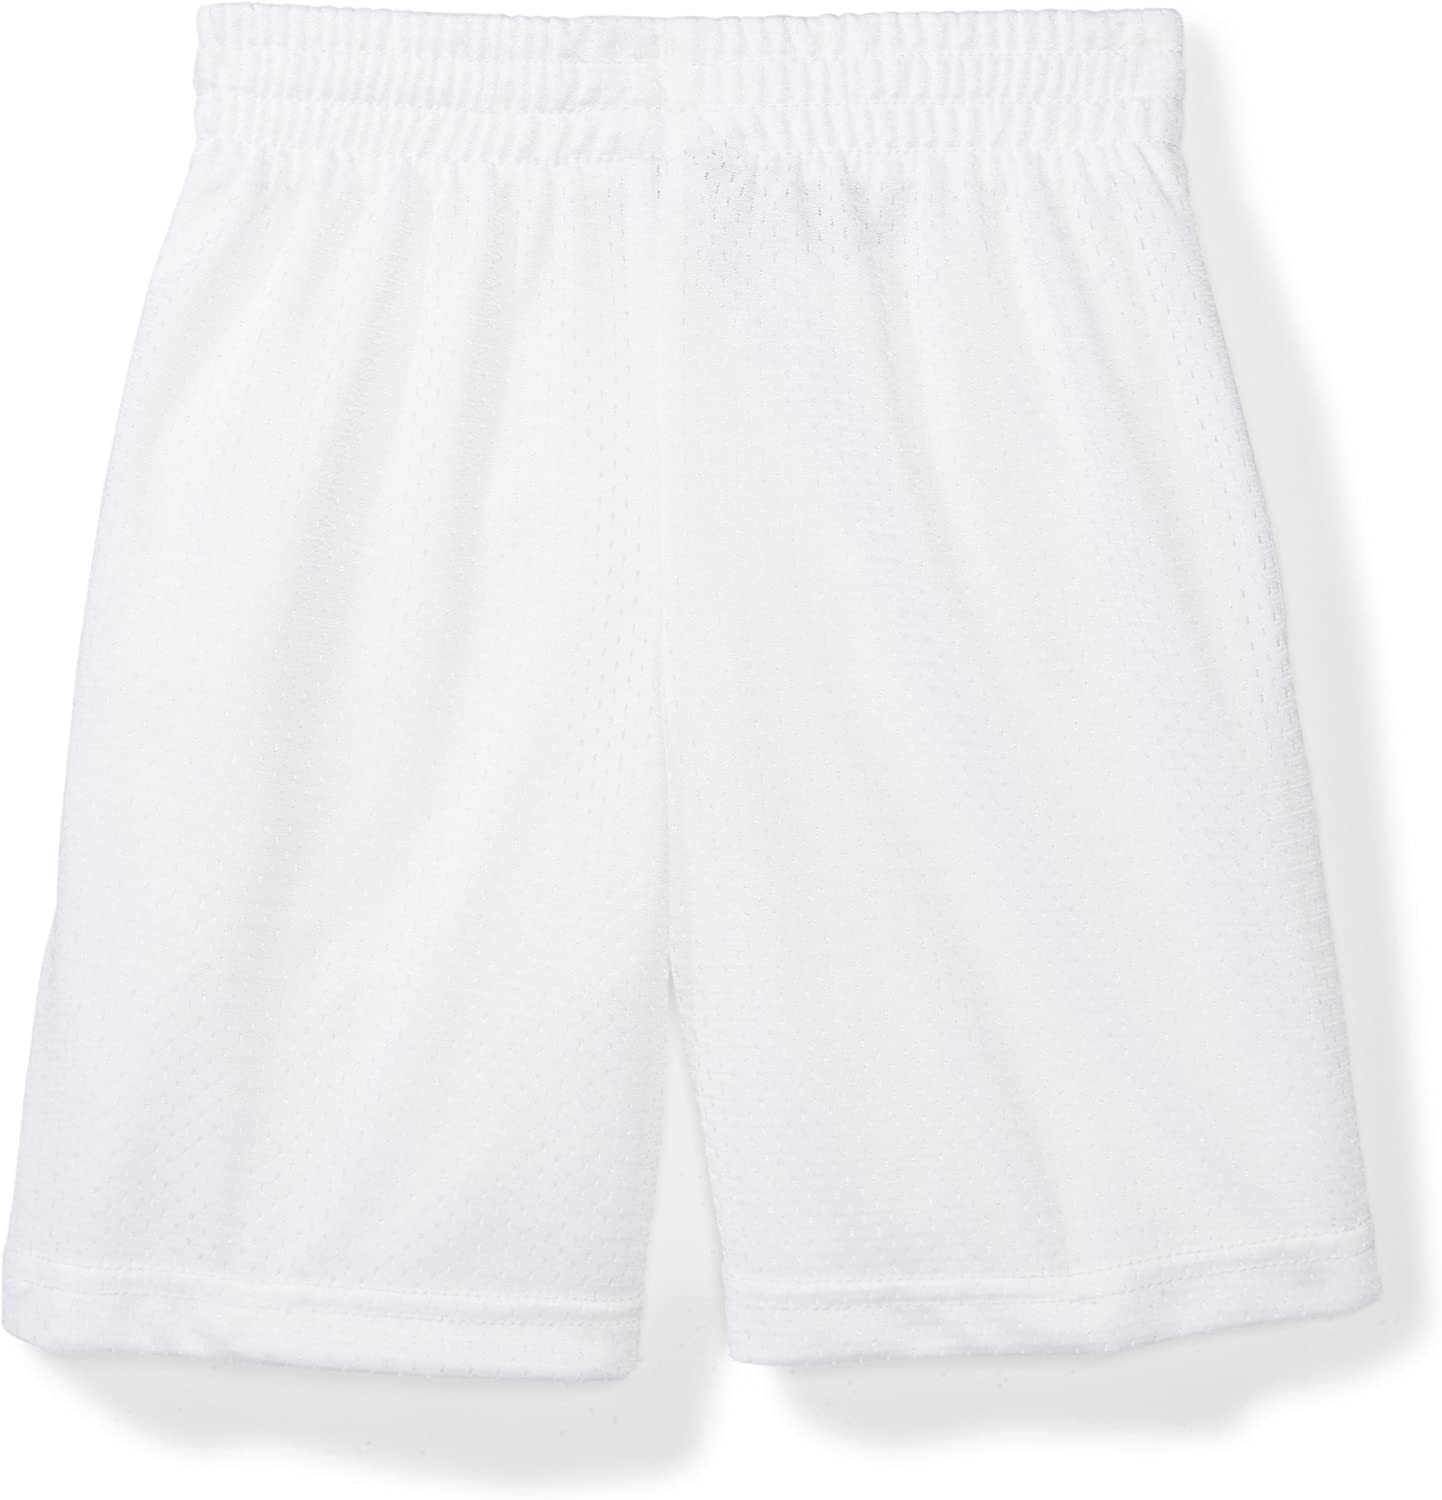 Exclusive Starter Boys 7 Mesh Short with Pockets